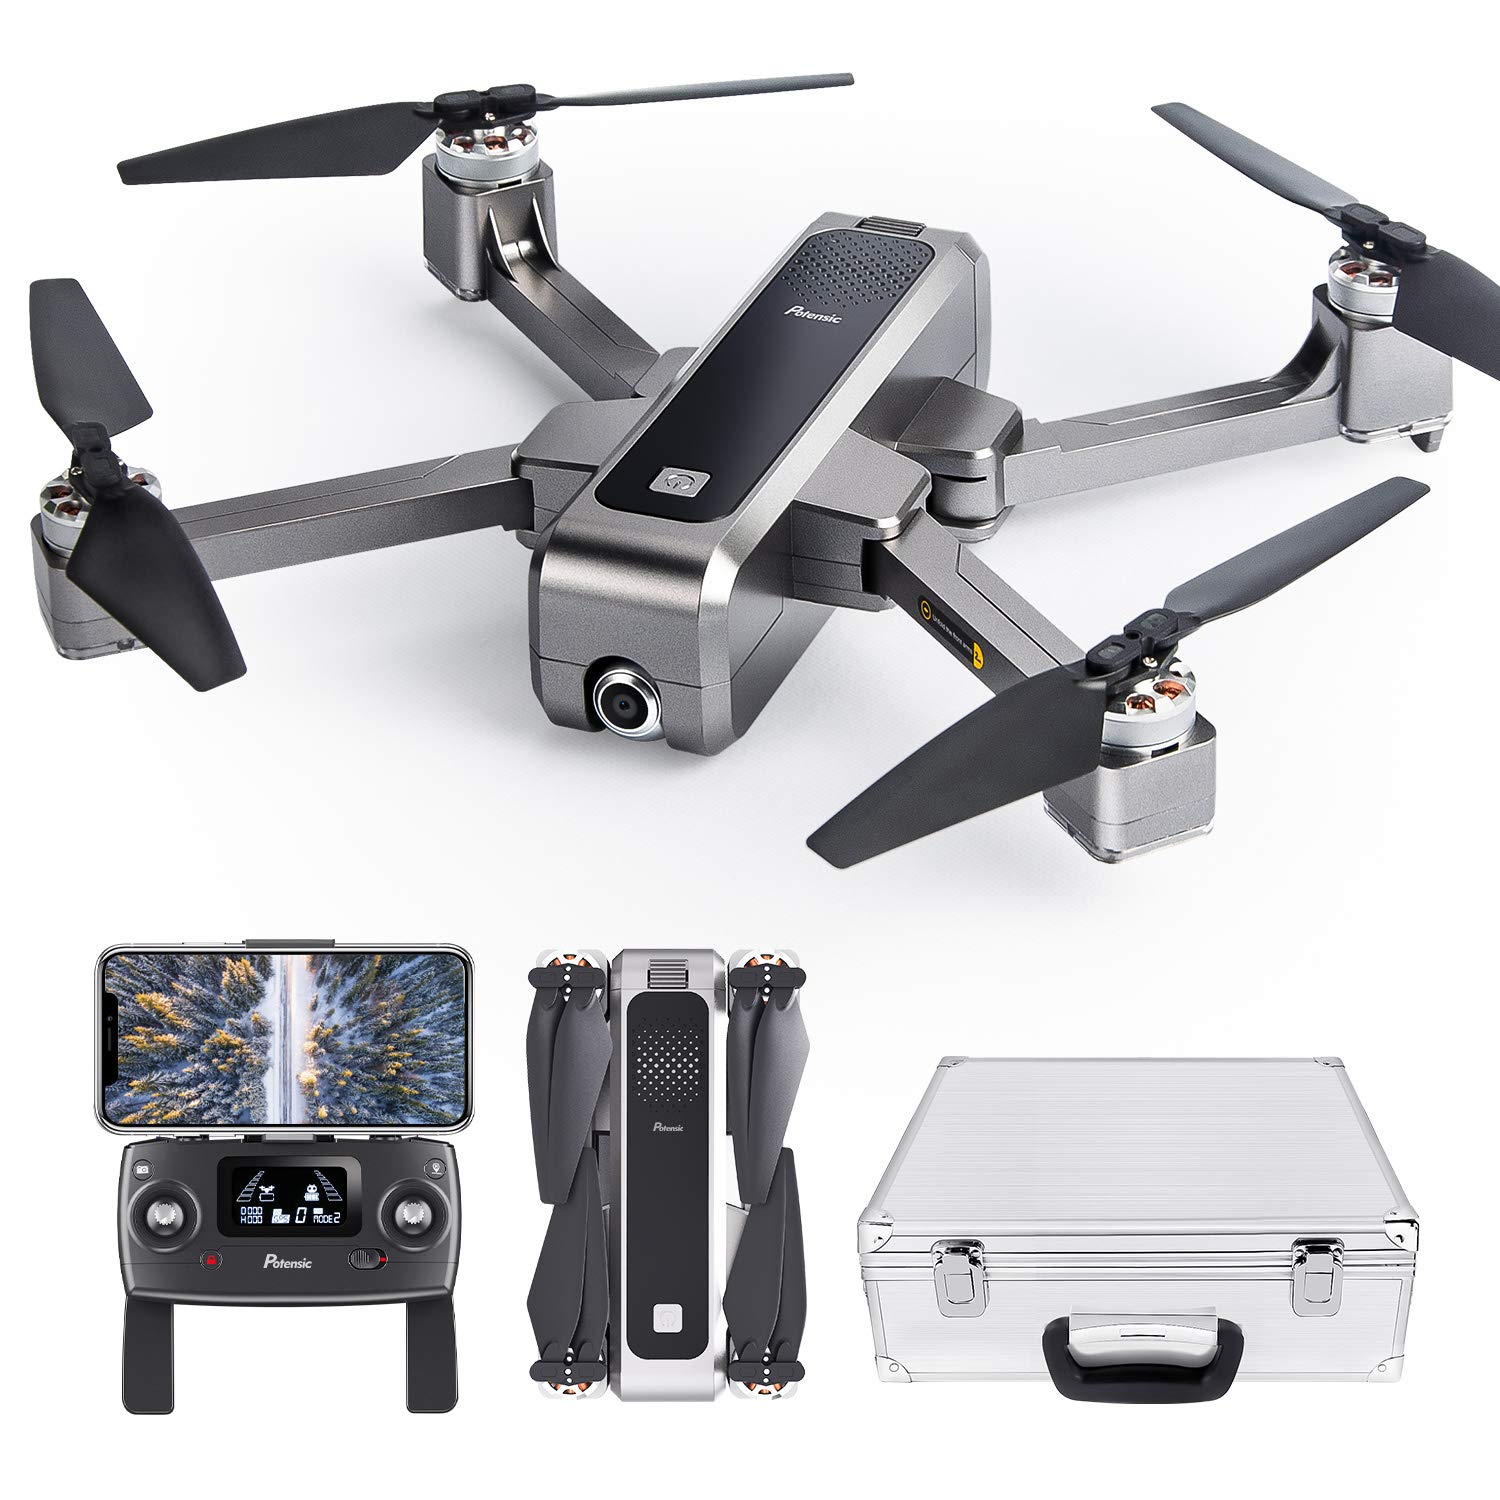 Potensic D88 Foldable Drone, 5G WiFi FPV Drone with 2K Camera, RC Quadcopter for Adults and Experts, GPS Return Home, Ultrasonic Altitude Setting, Optical Flow Positioning, Brushless Motors with Case by Potensic